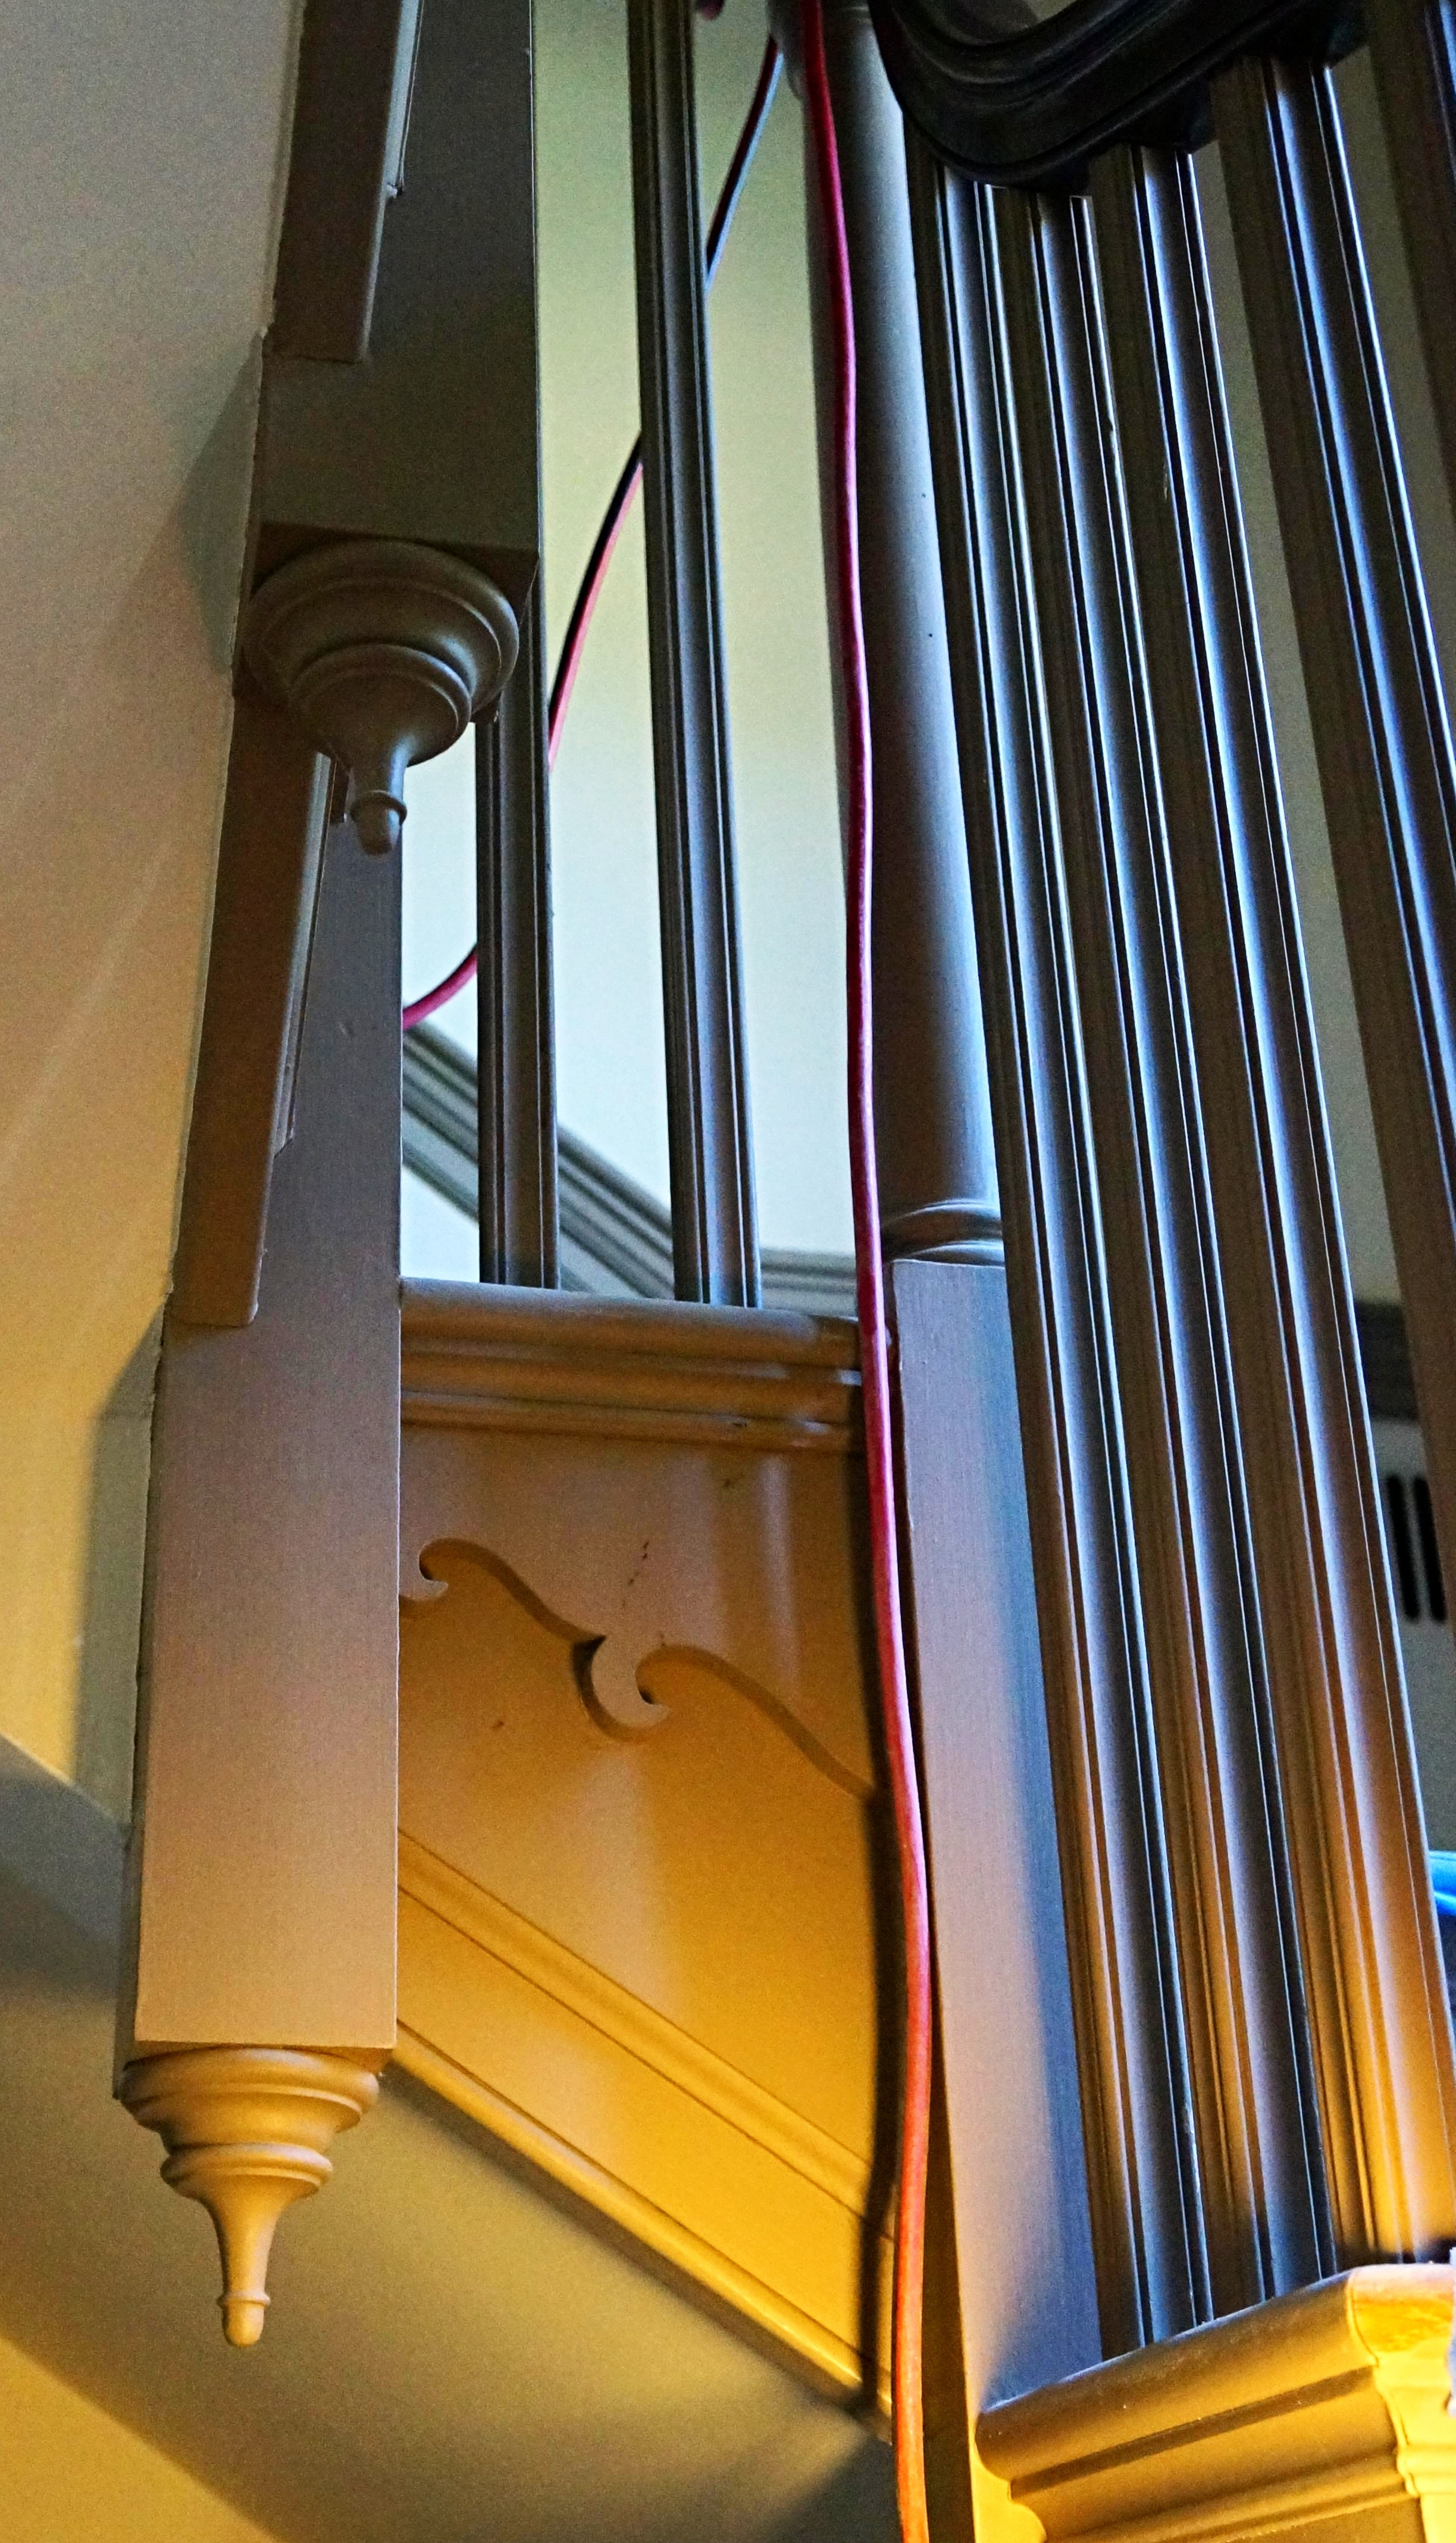 melding-old-new-remodel-addition-chester-county-stair-detail.jpg